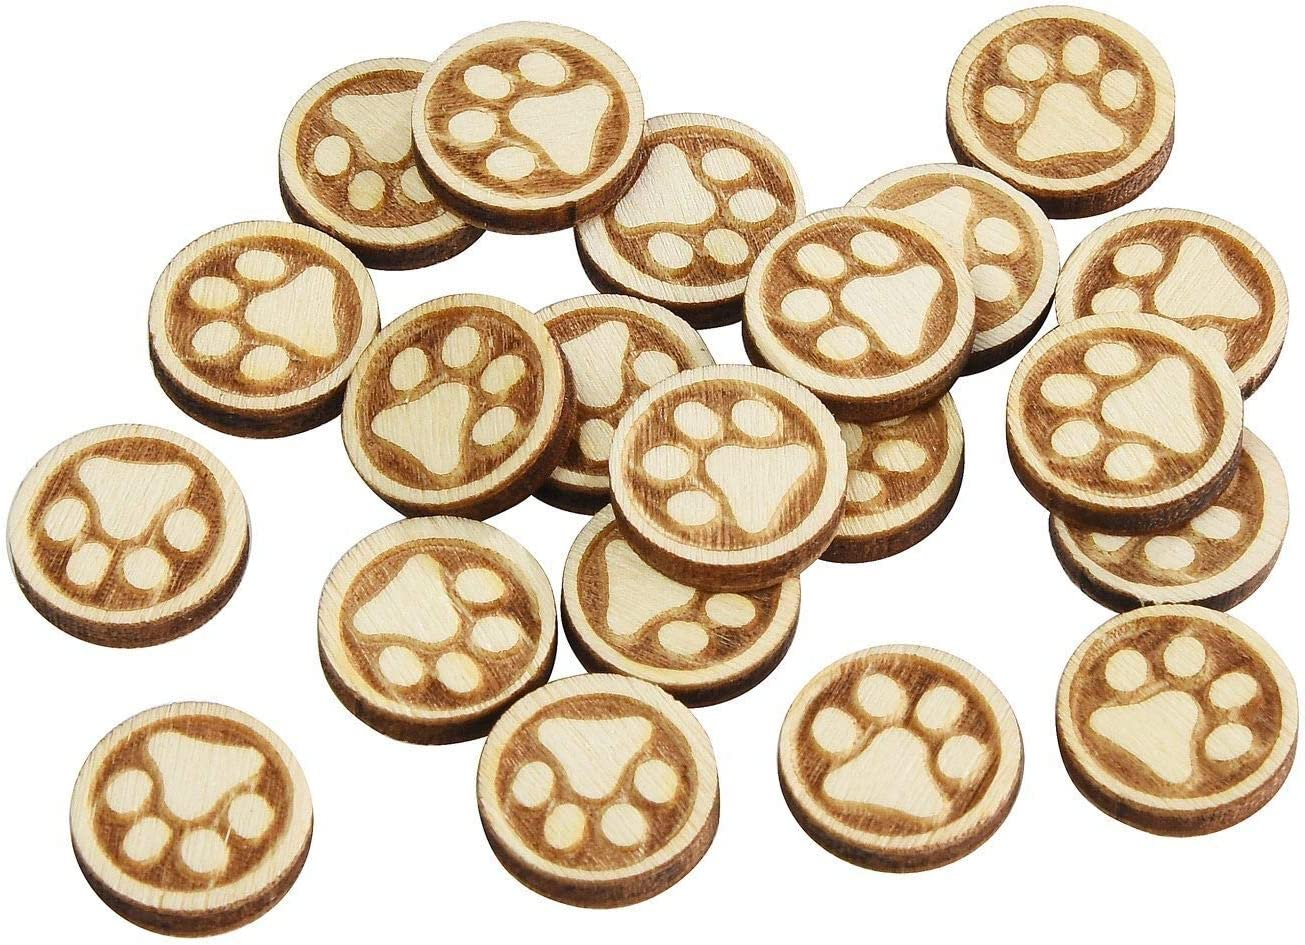 table confetti CABOCHONS earrings supplies blanks pieces WOOD 24 12 inch PUZZLE jewelry making natural wood studs wooden